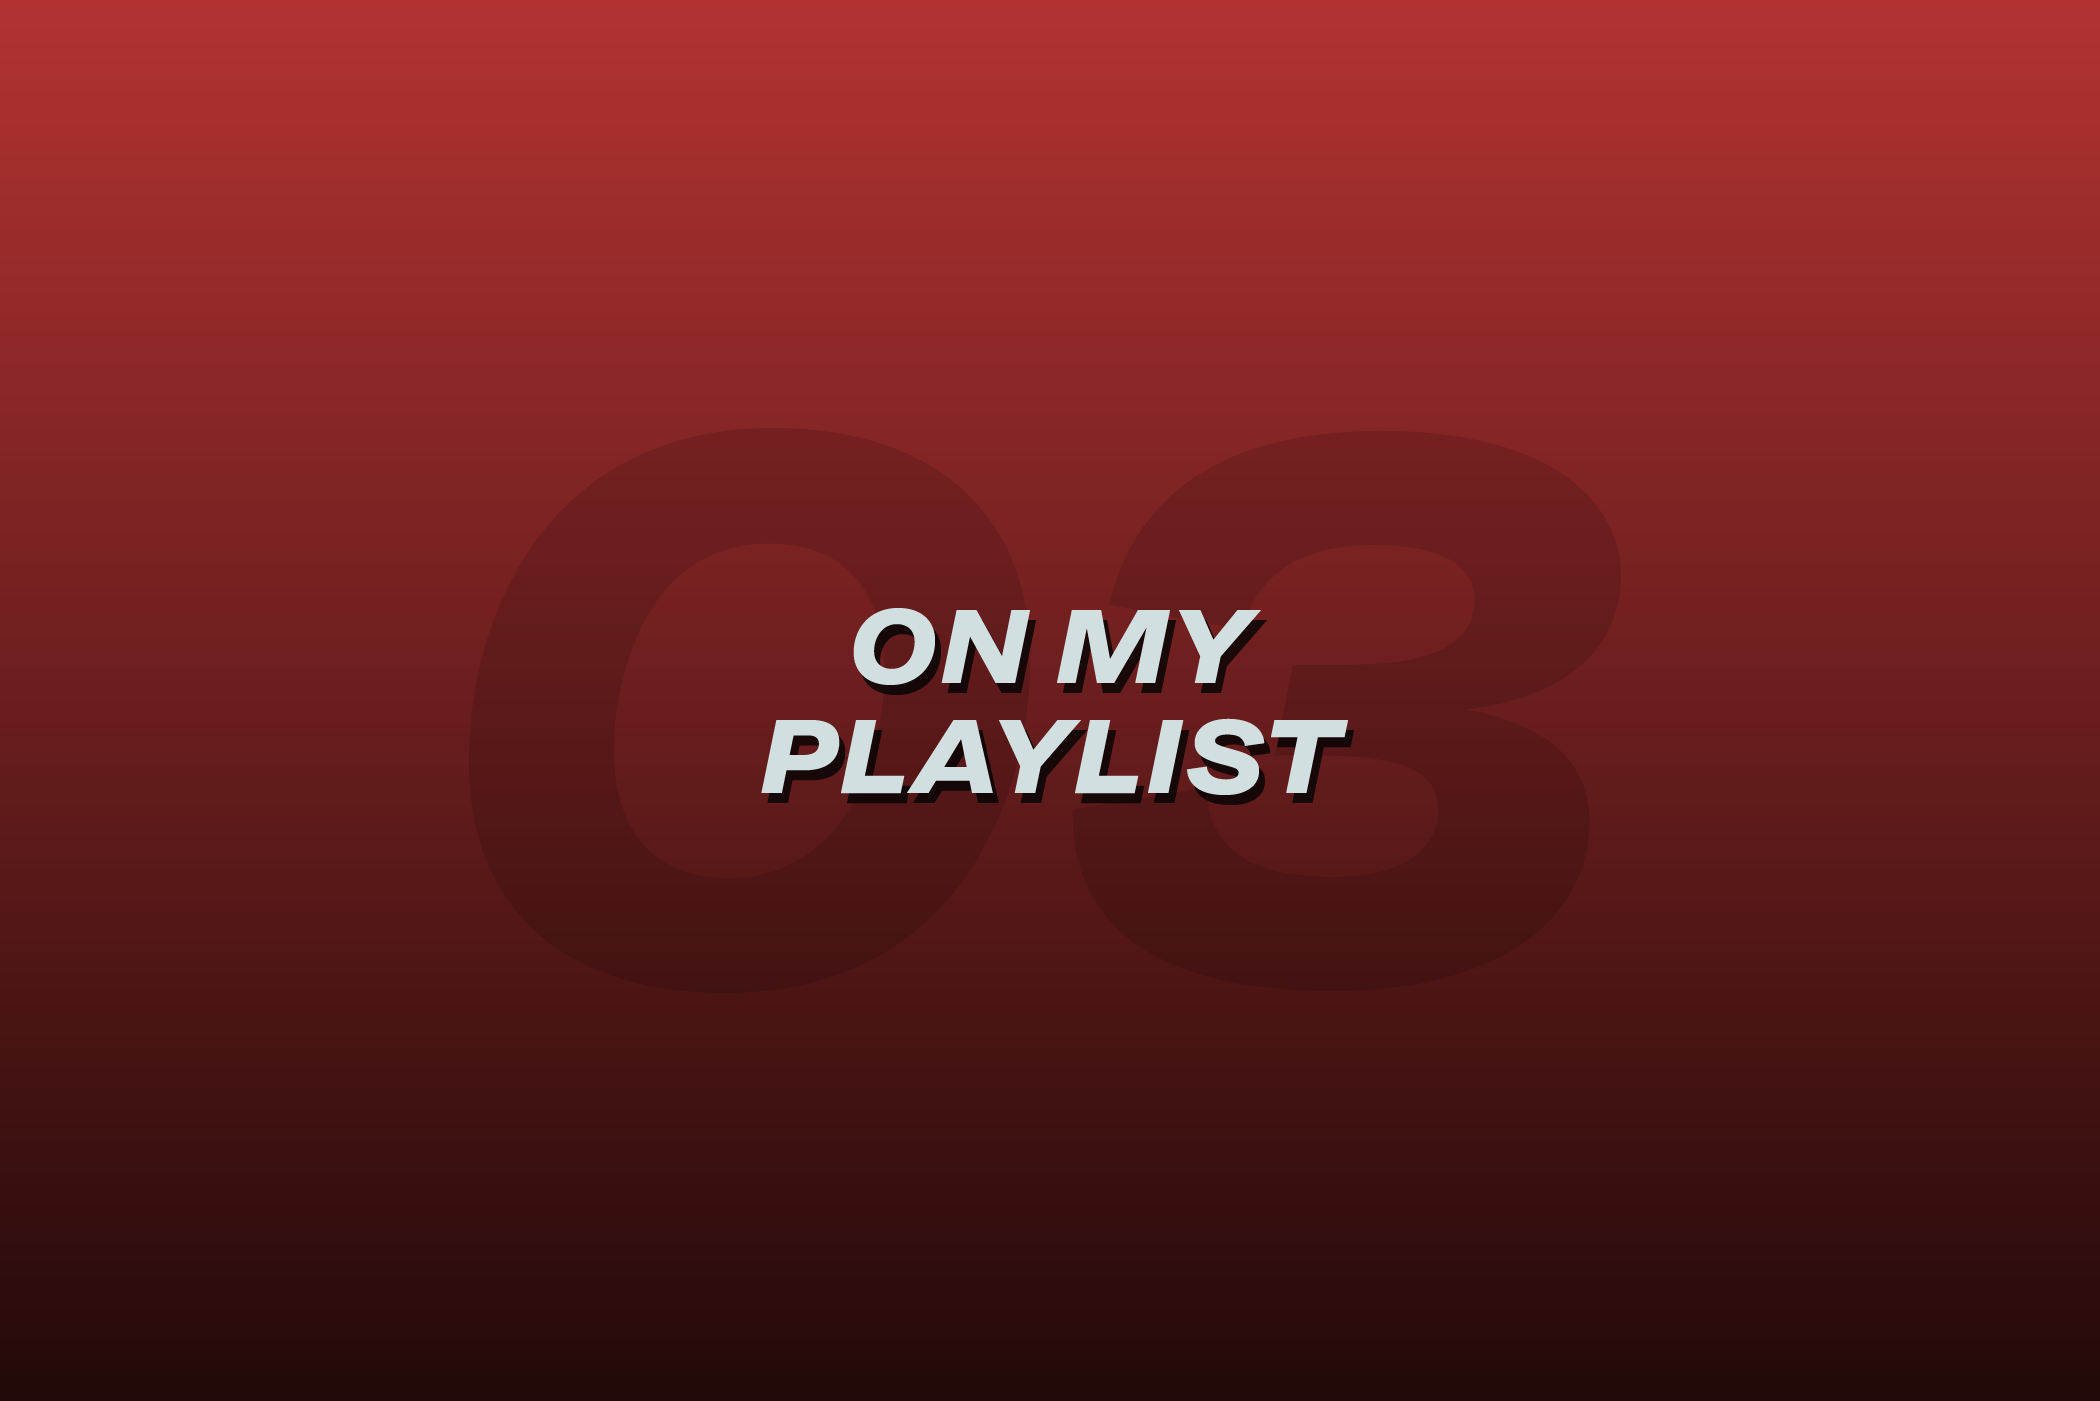 Greysuitcase - On My Playlist 03